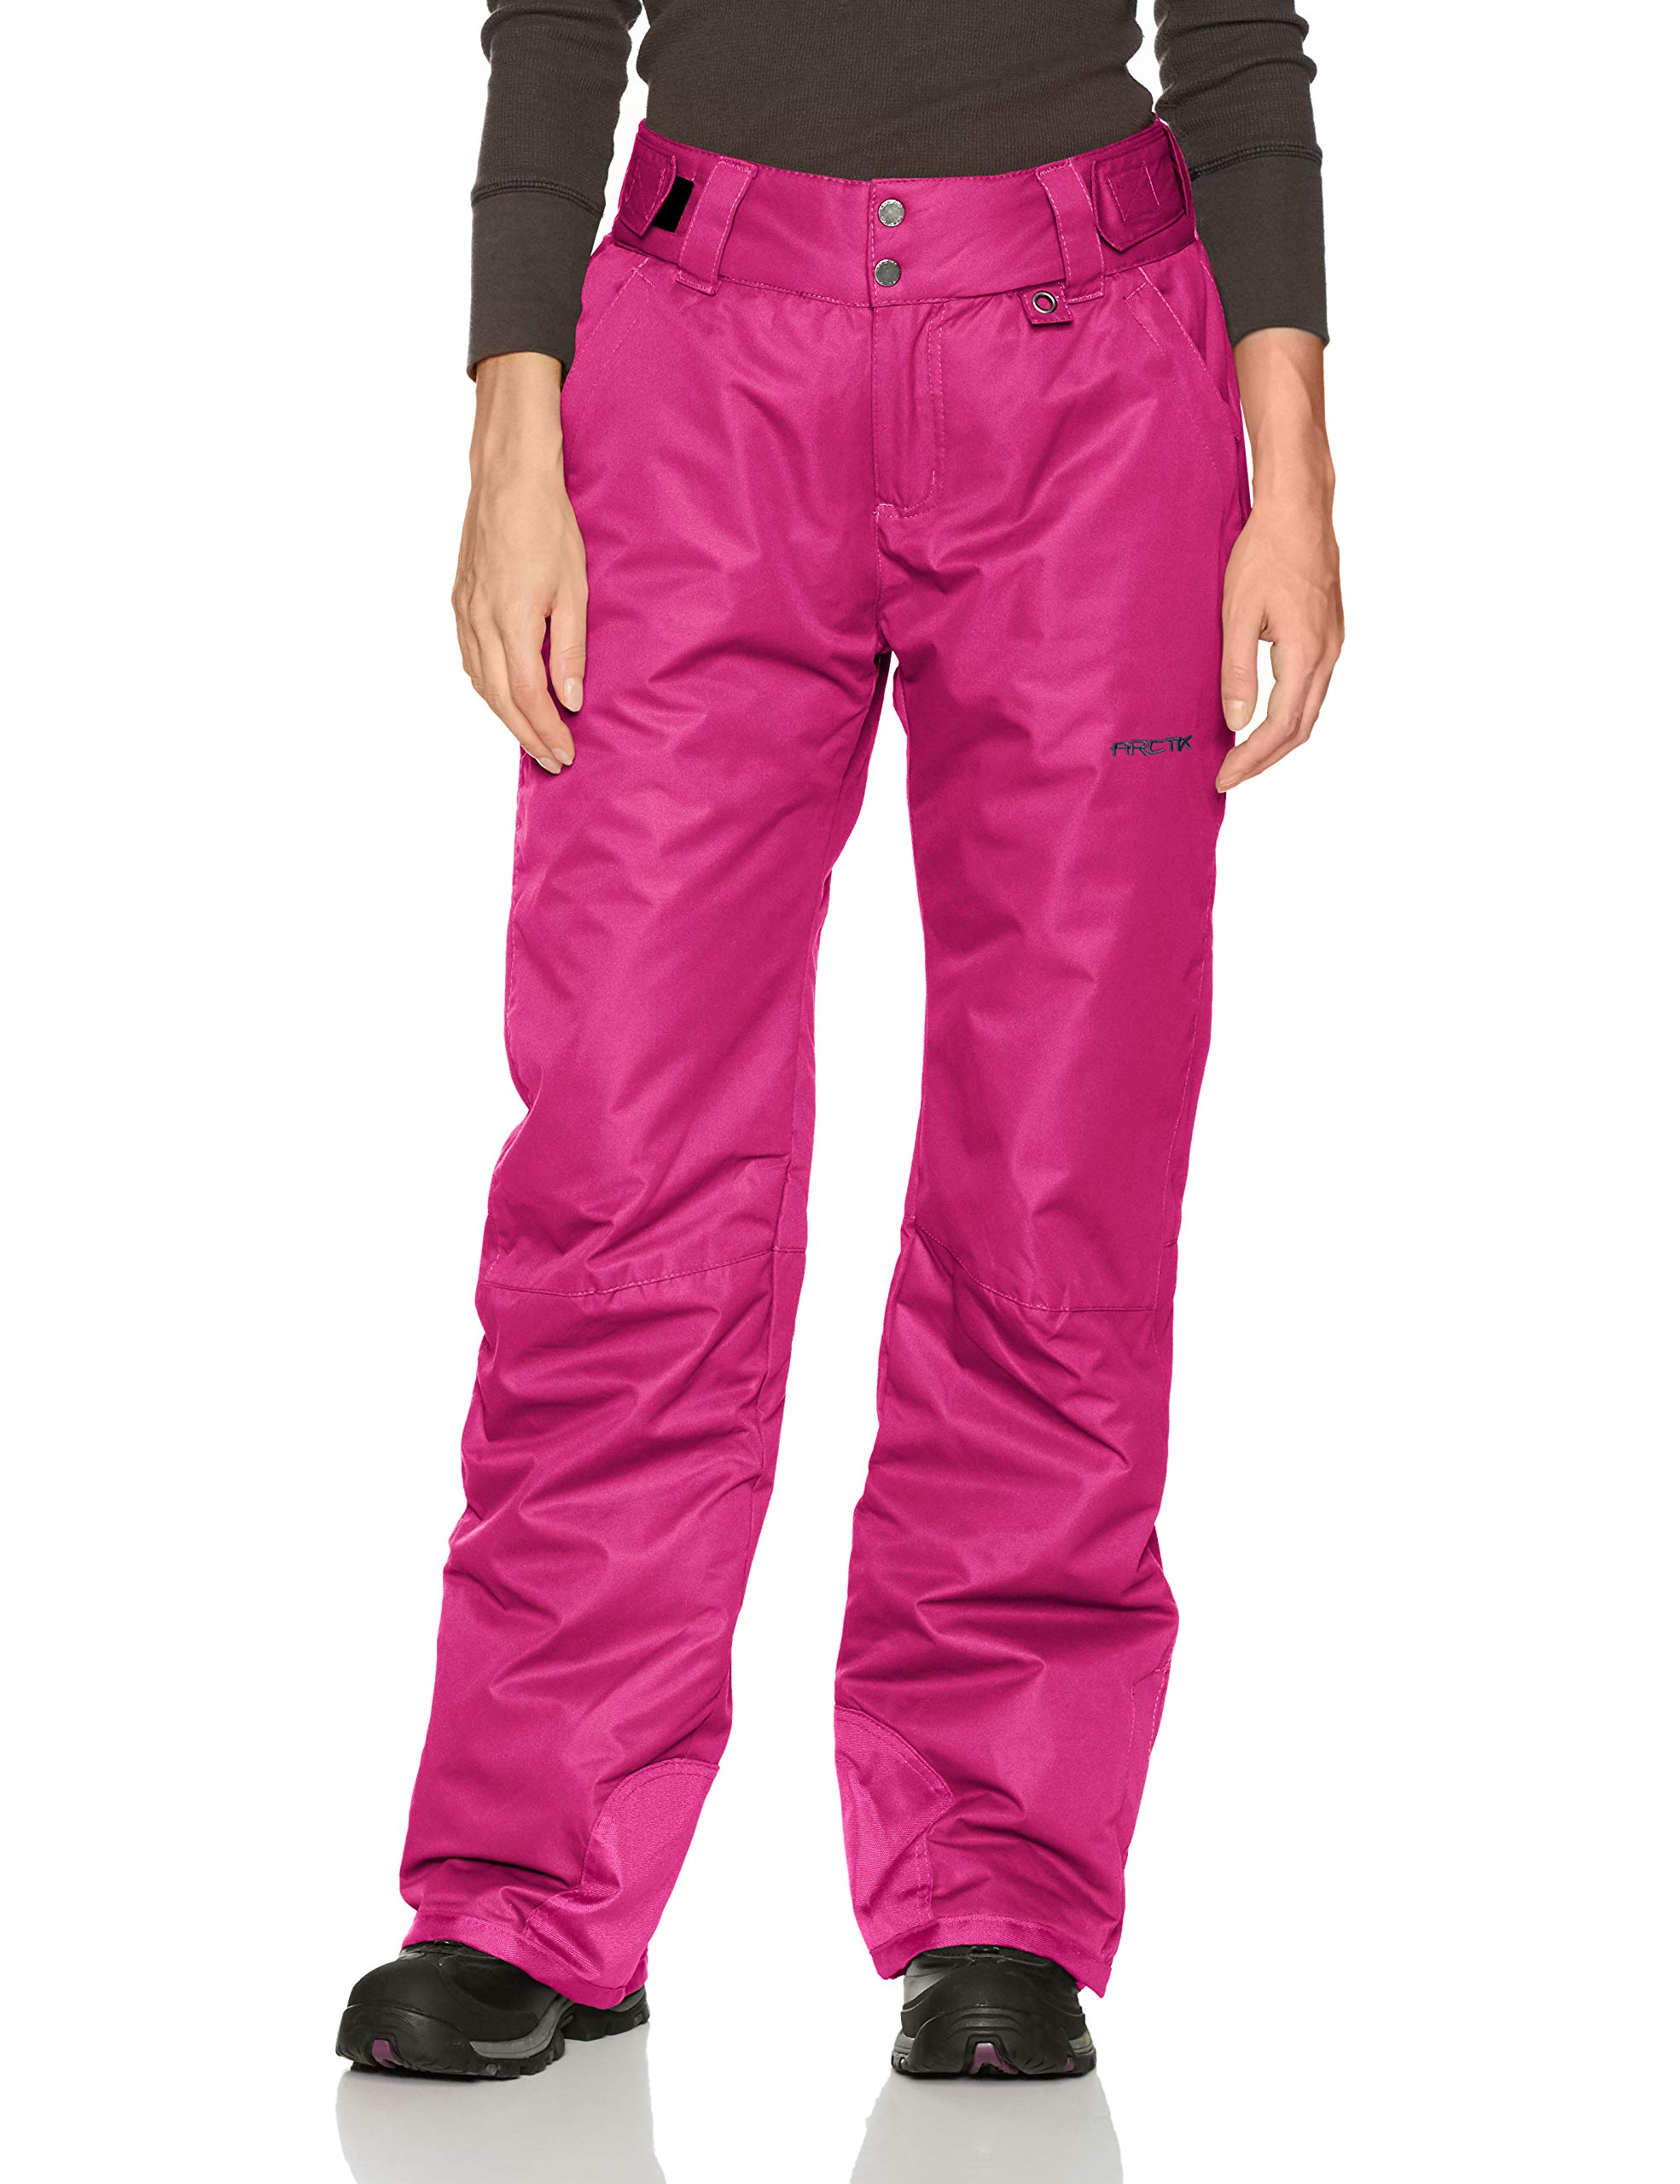 Arctix Women's Insulated Snow Pants, Orchid Fuchsia, X-Small/Regular by Arctix